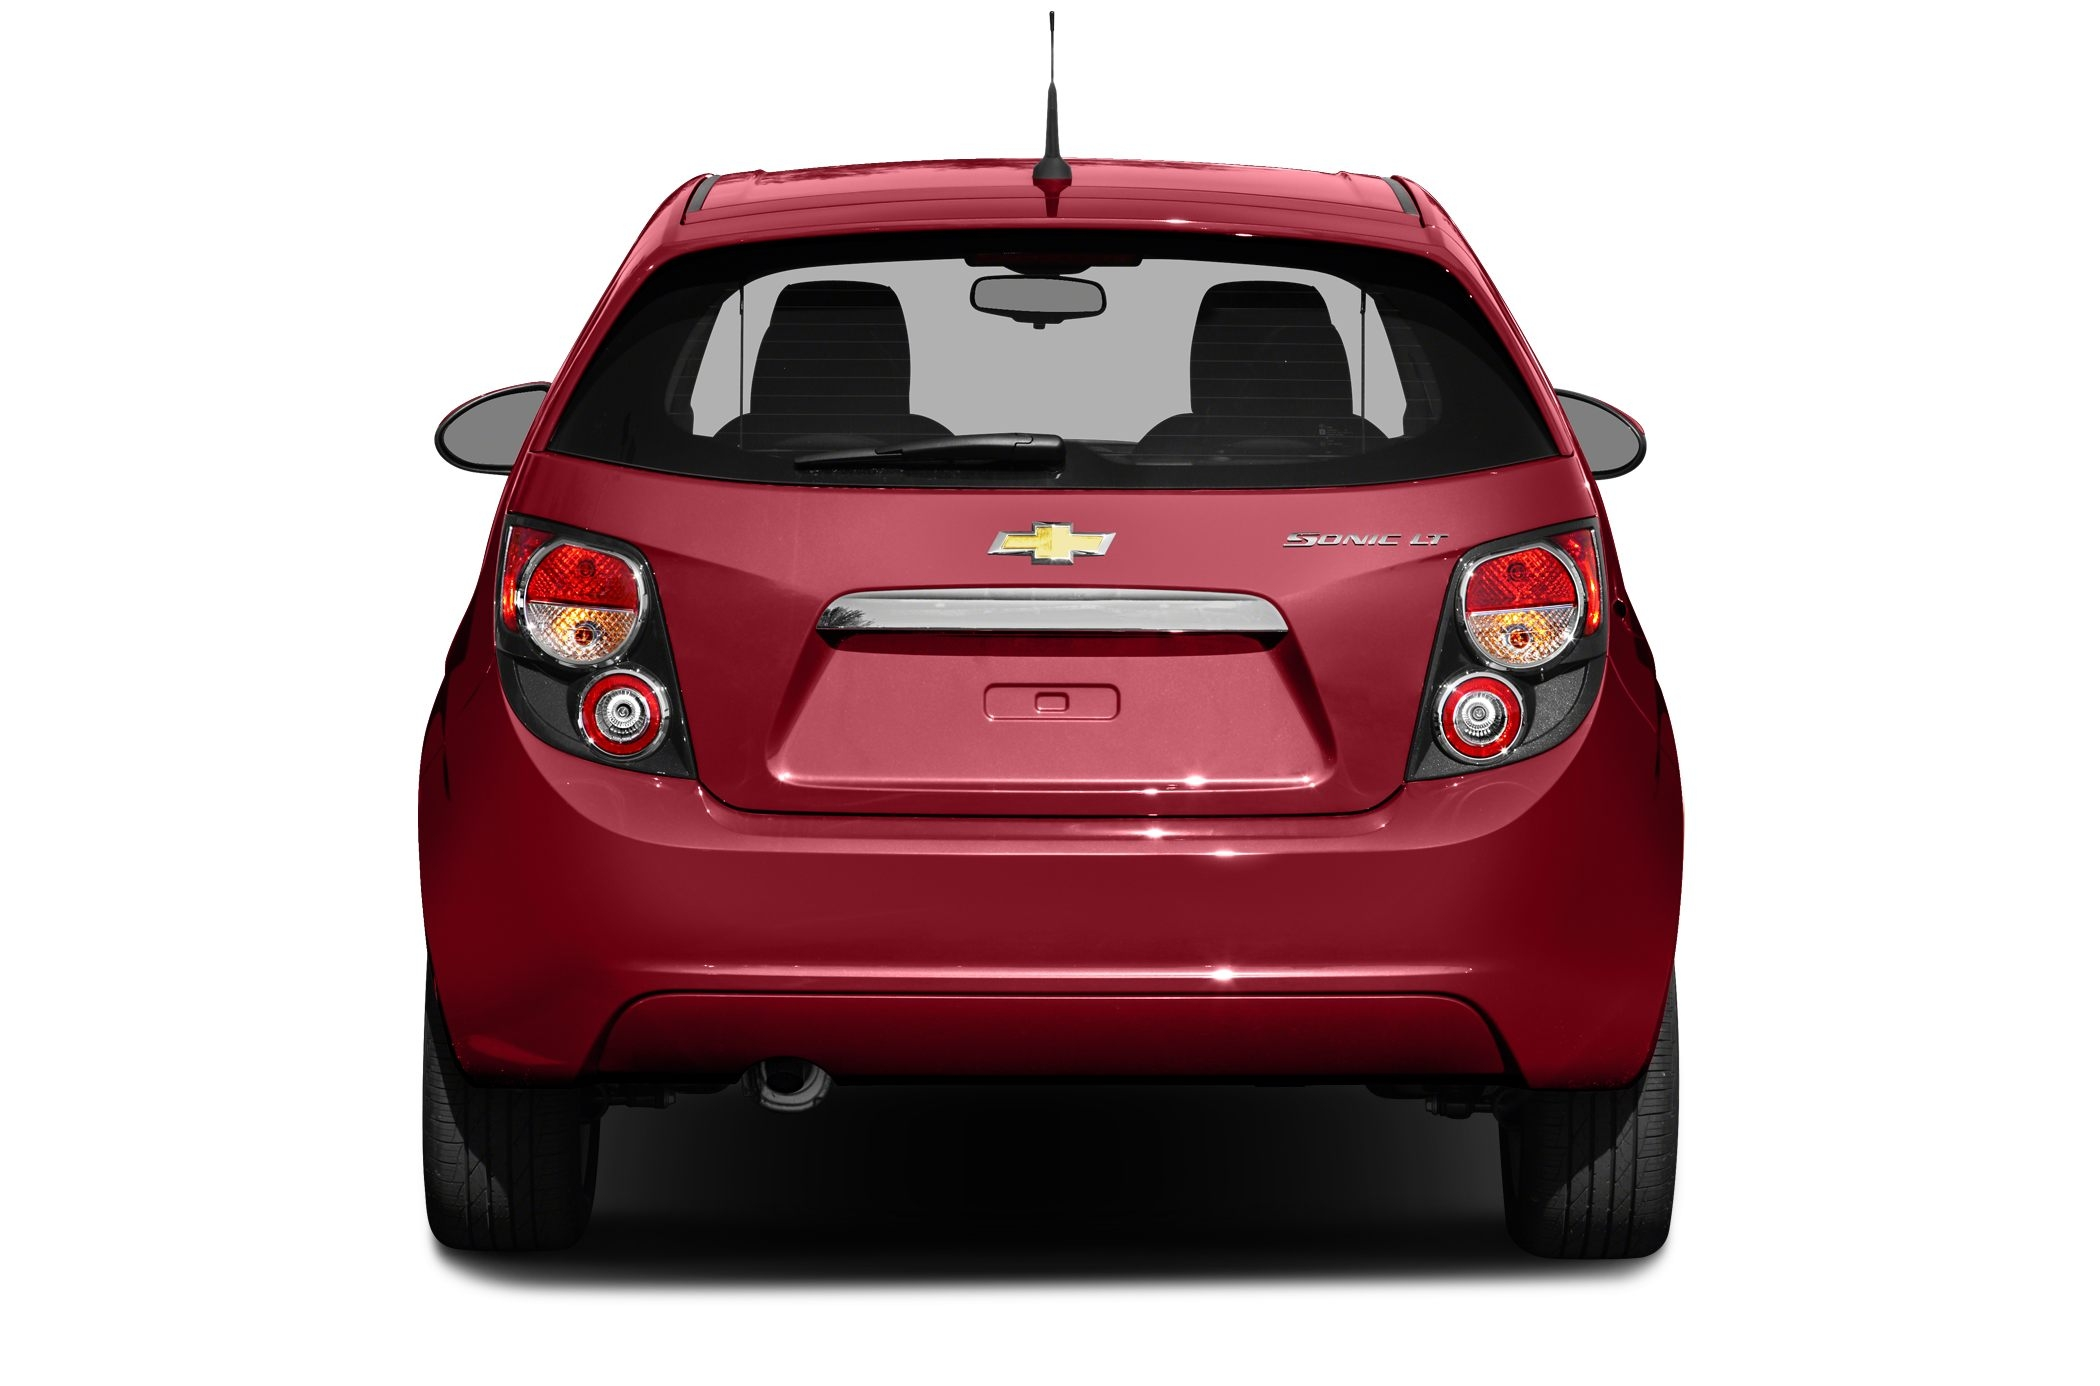 new 2016 chevrolet sonic invoice price chevrolet sonic 2016 finding invoice price on new cars